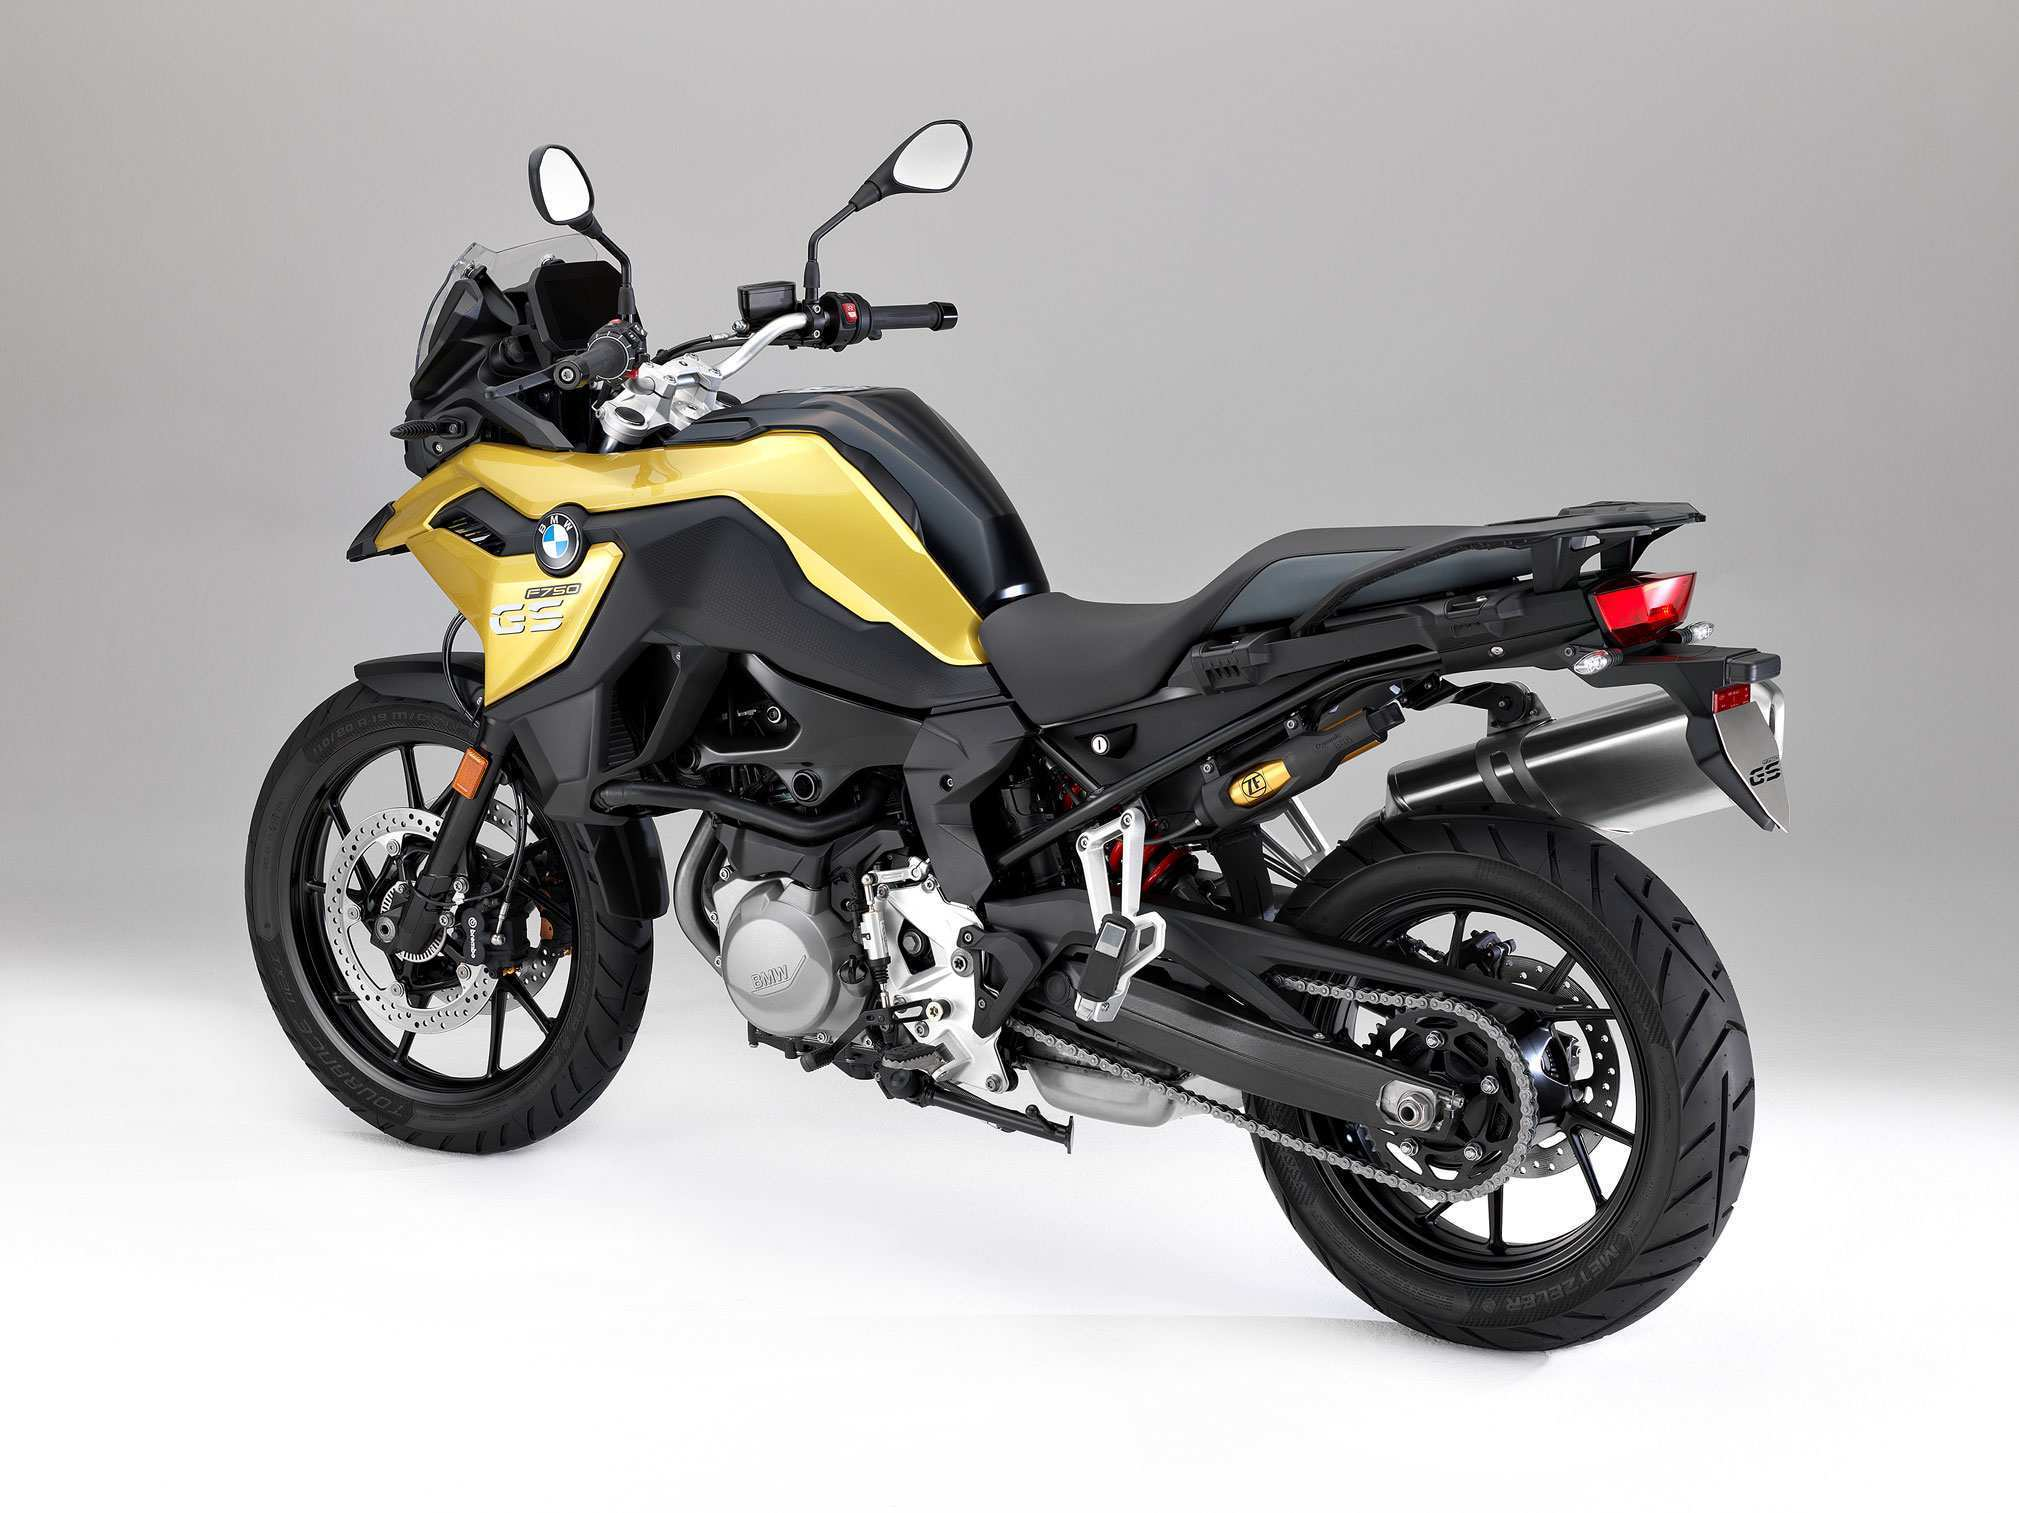 51 The Best Bmw F750Gs 2020 Interior